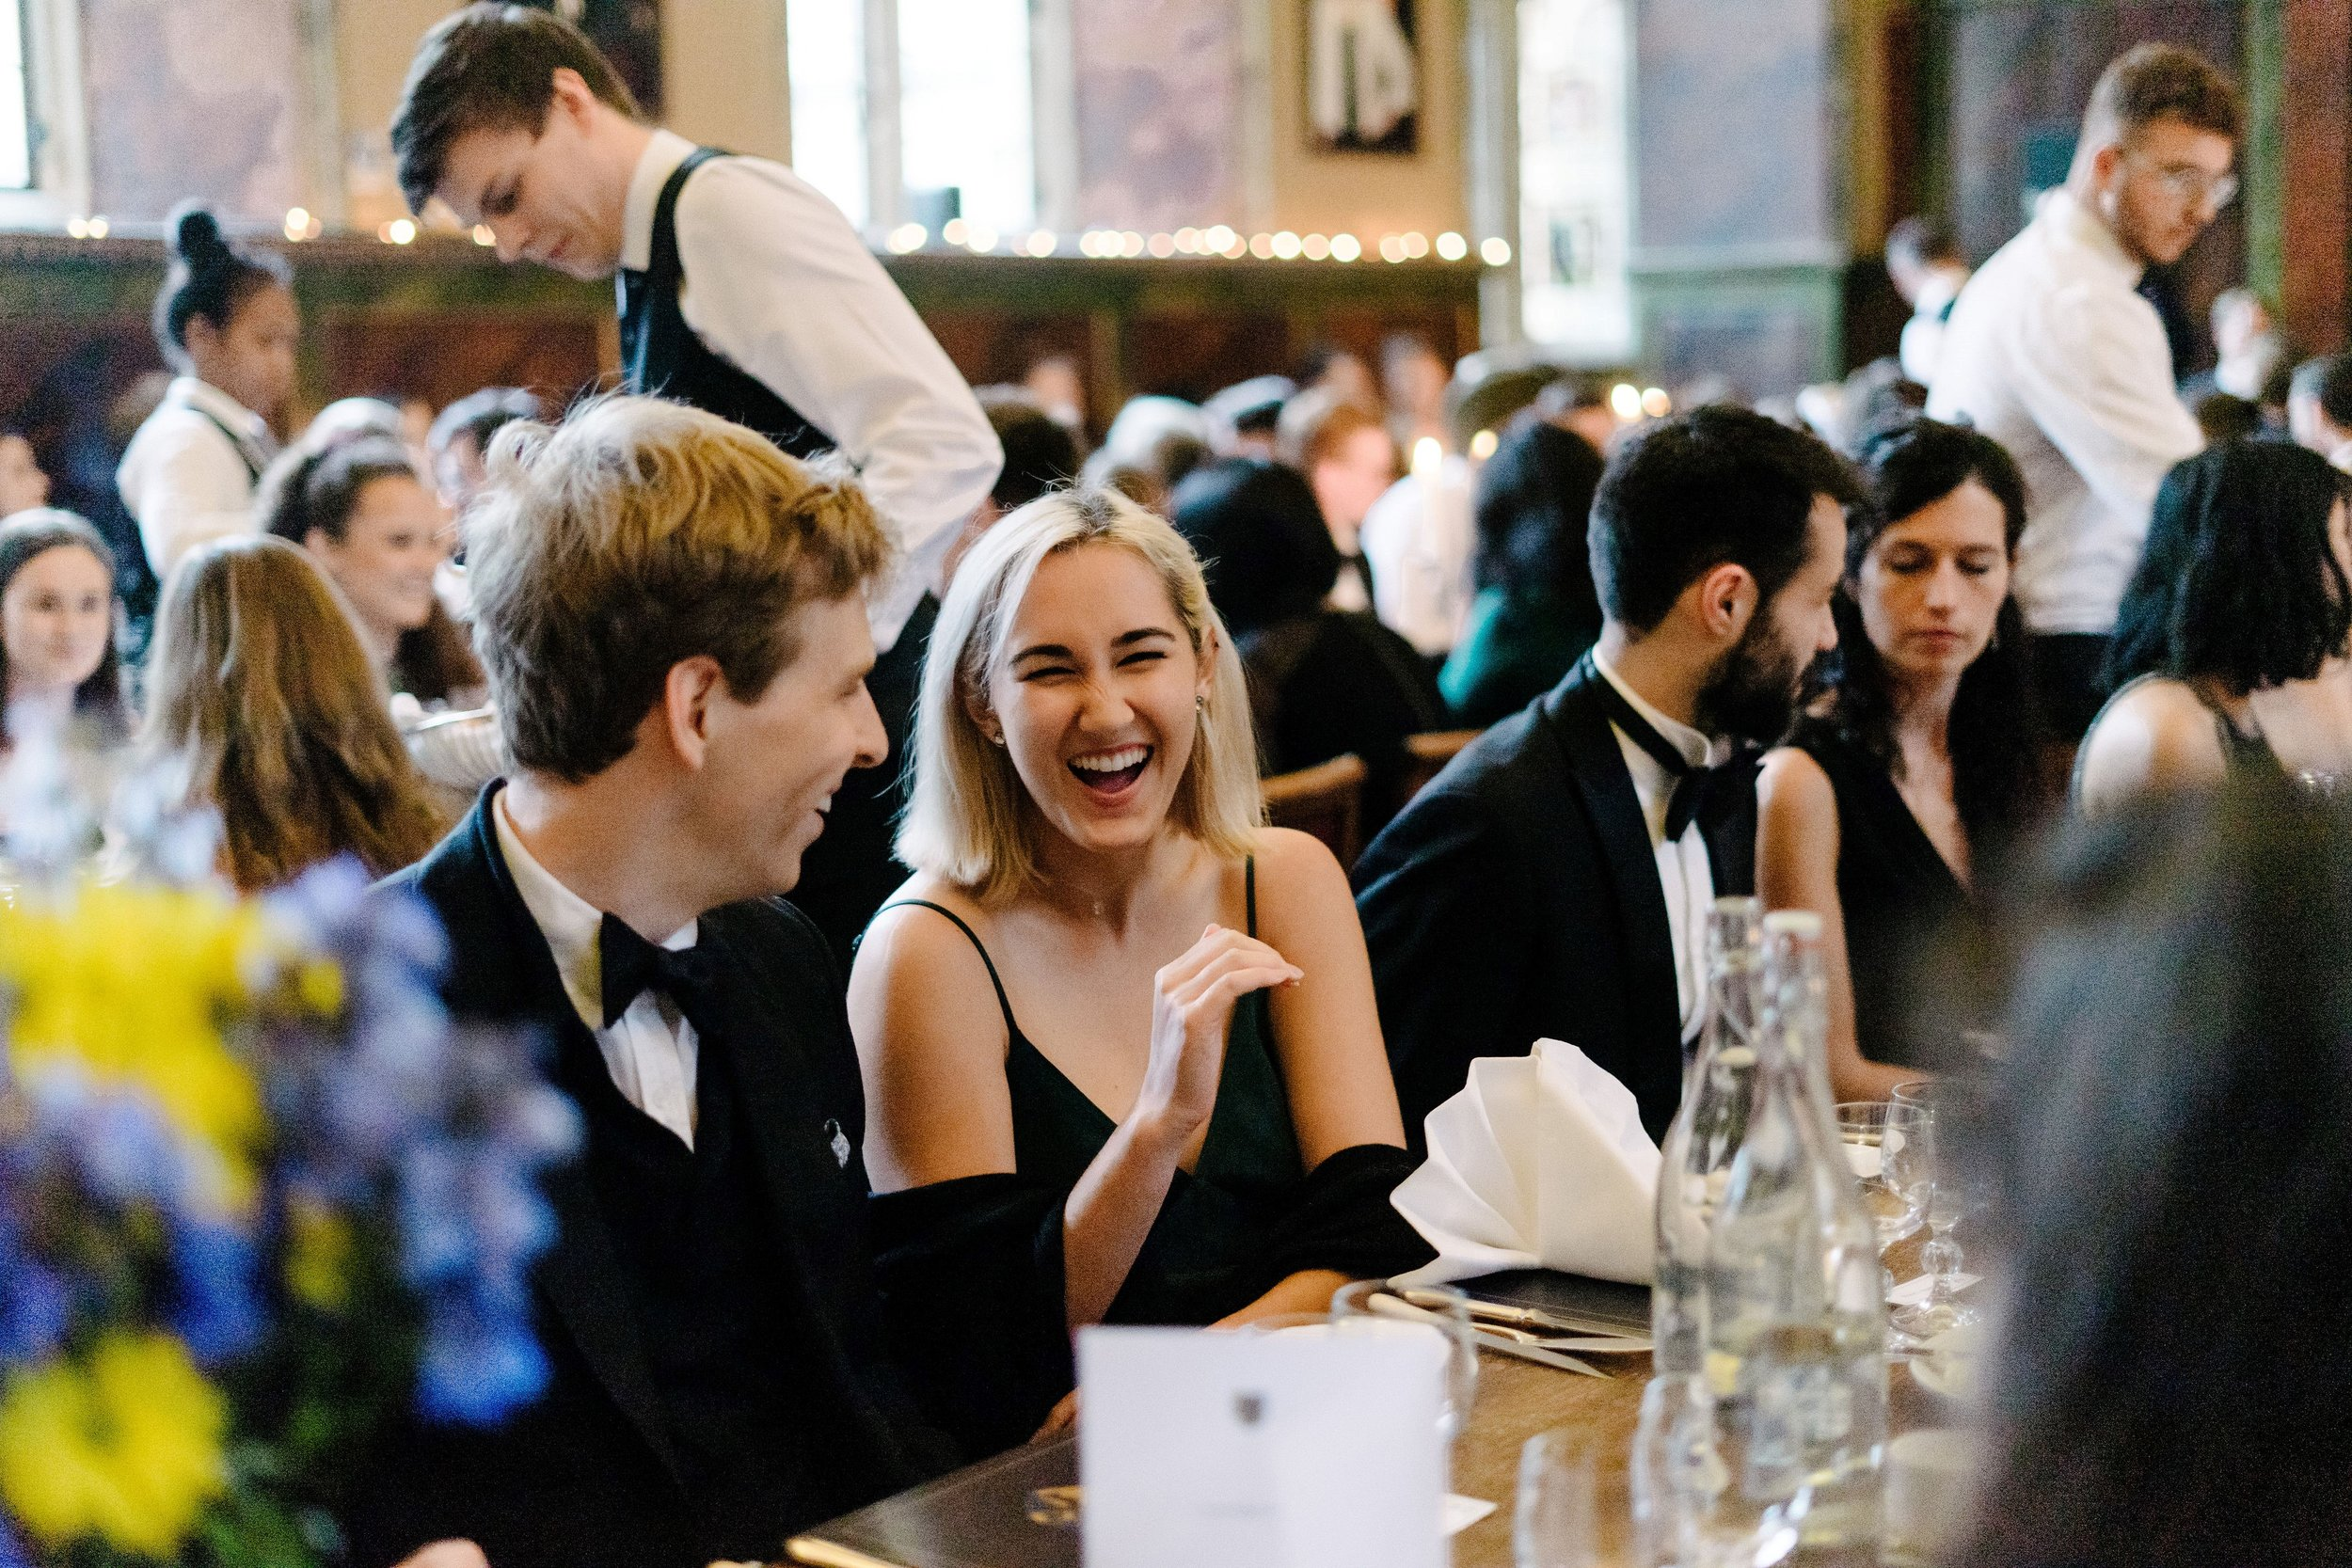 Members of the MCR share a light moment during the gala dinner   Photographer: Izzy Romilly